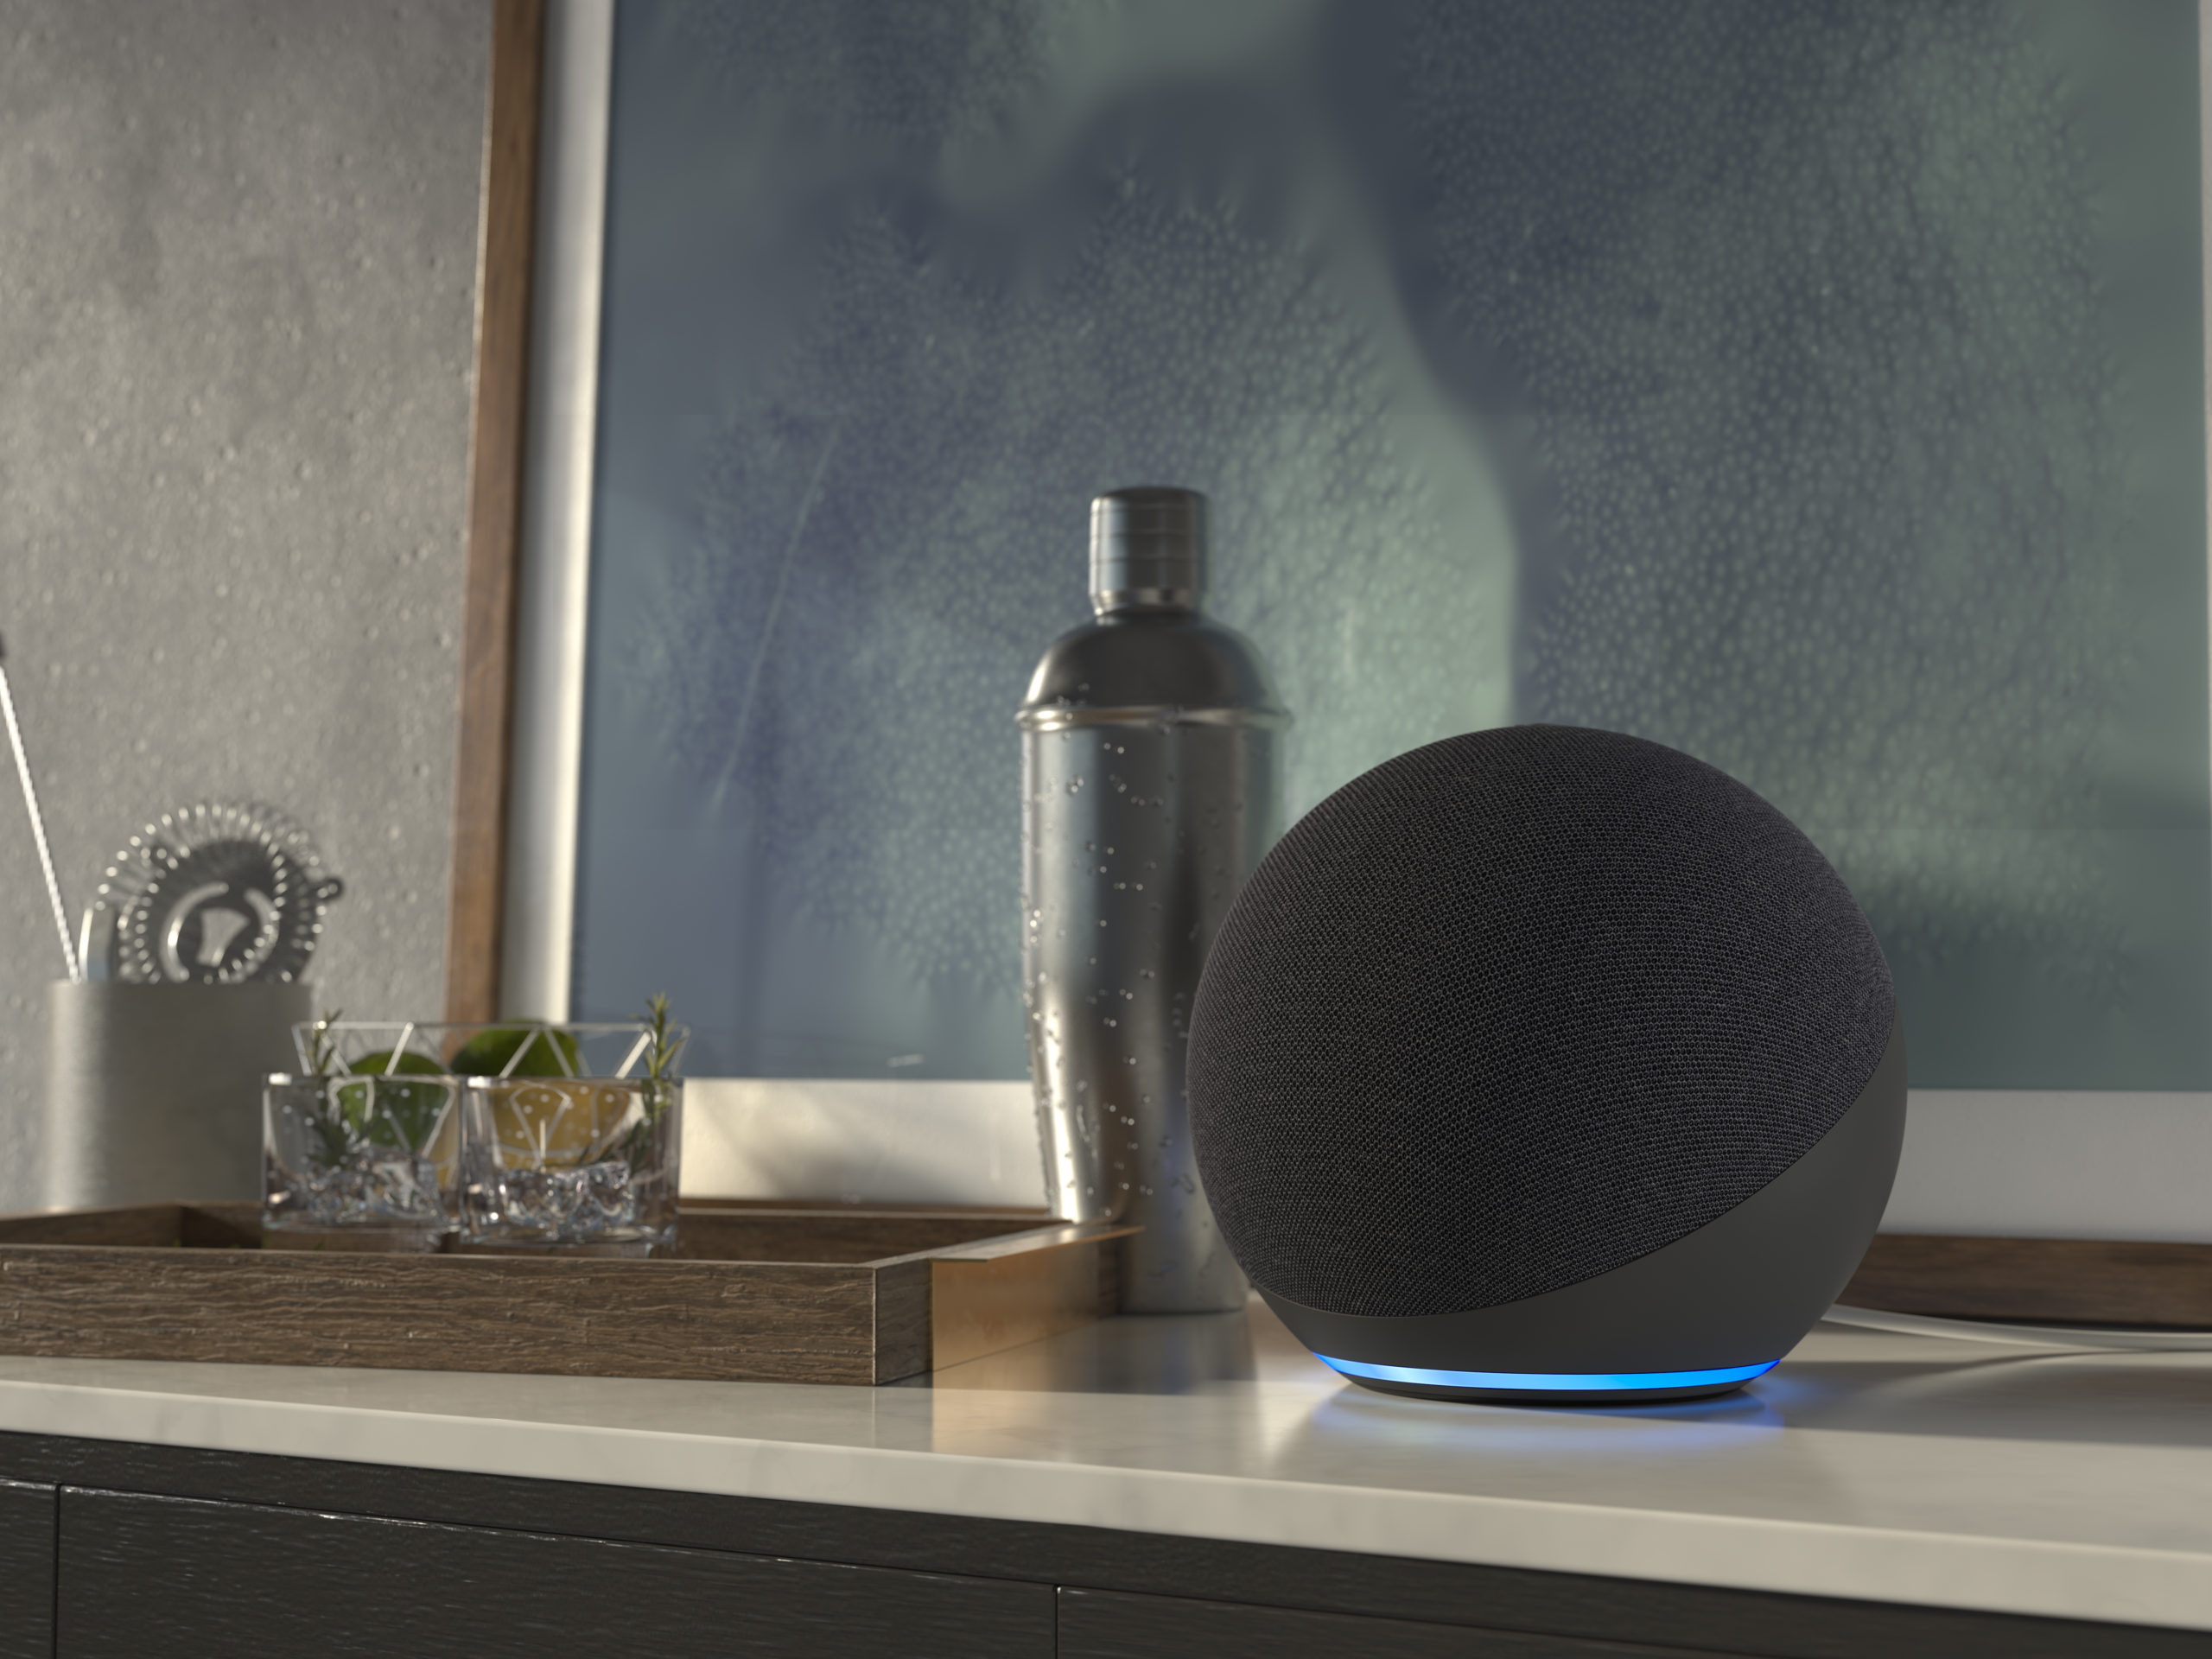 Amazon Echo press image courtesy of Amazon